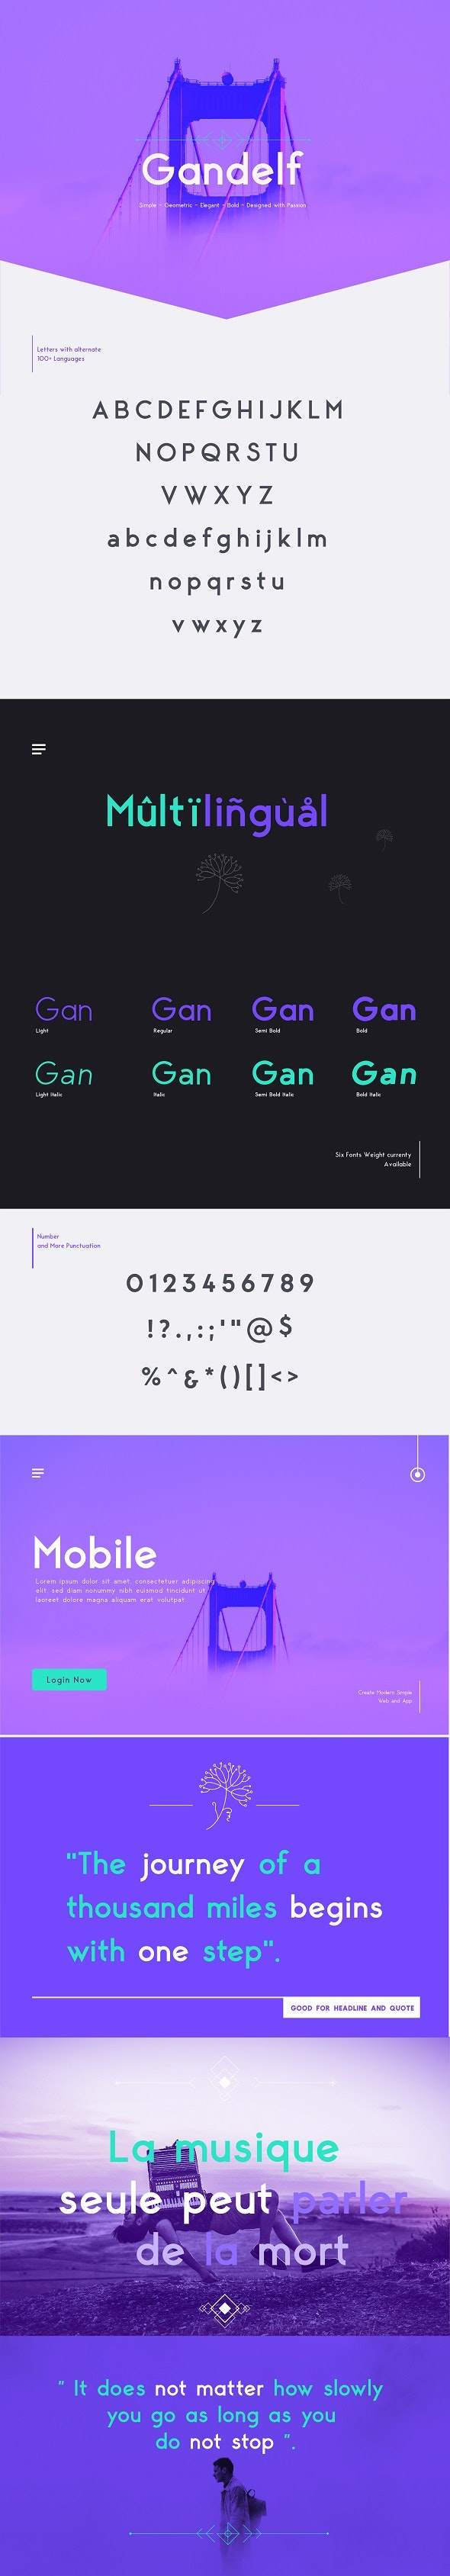 Gandelf – Elegant, Geometric, Clean, Fashionable Sans Serif Font